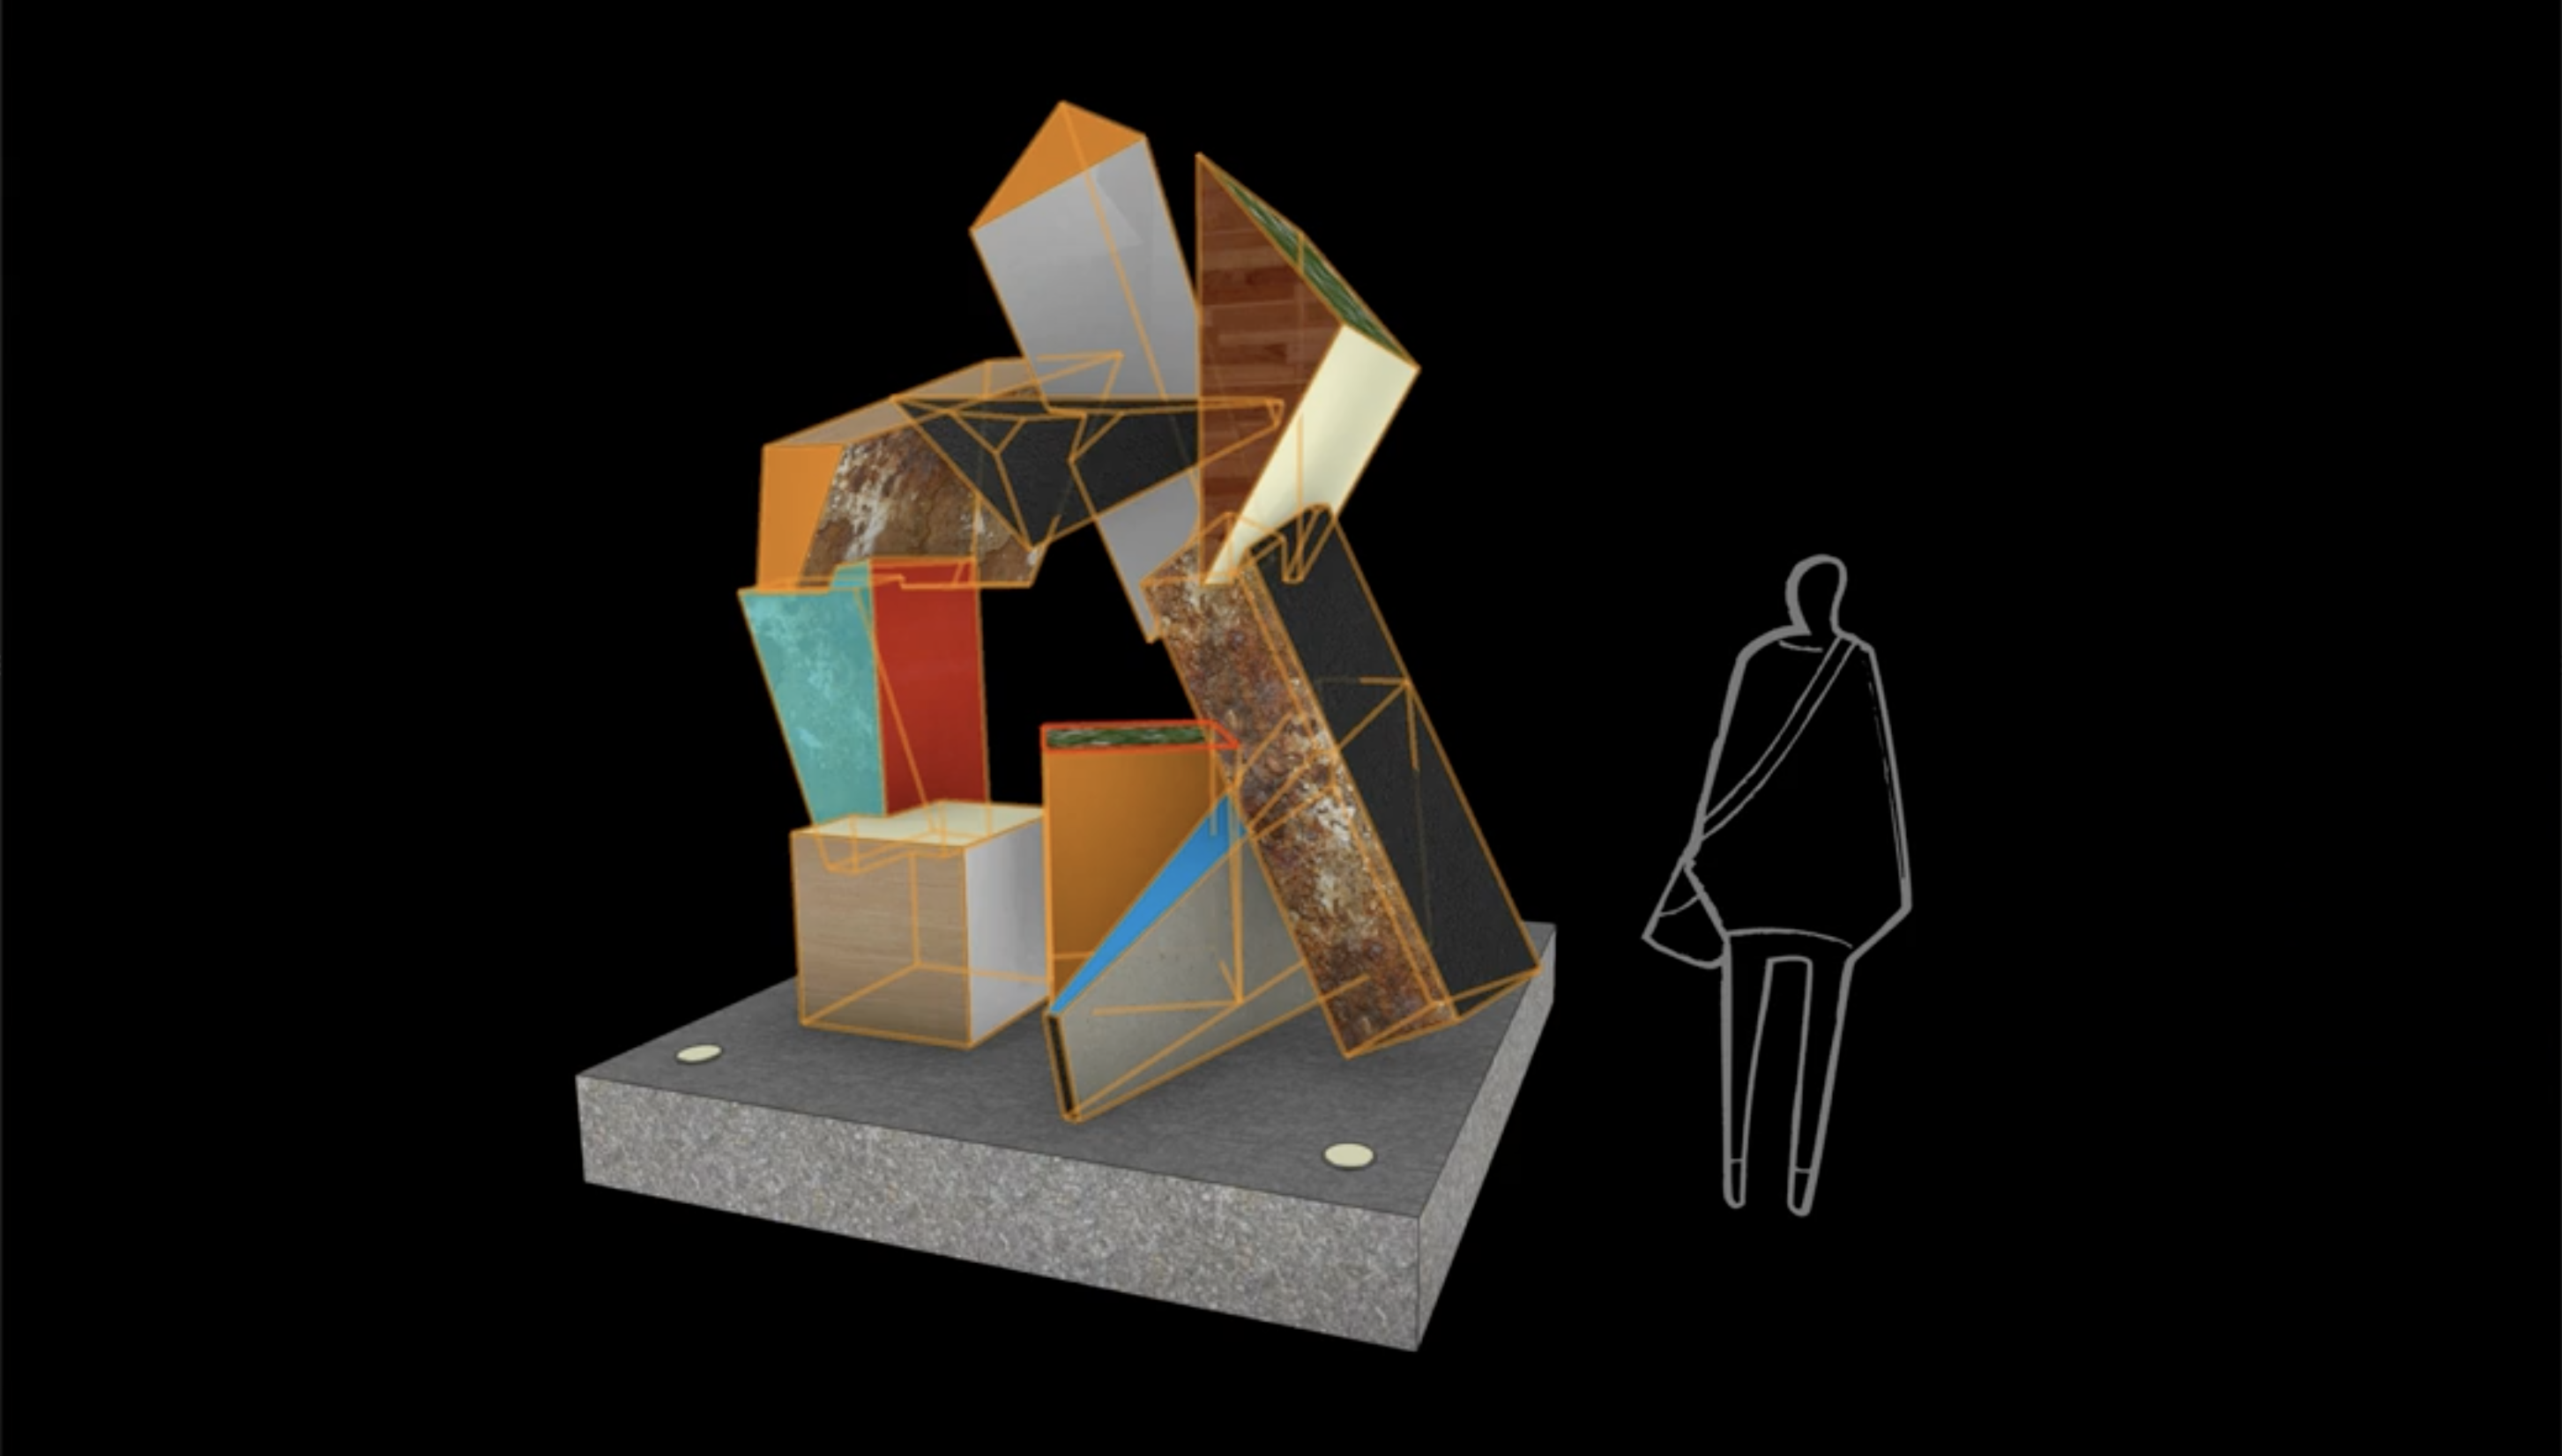 Vectorworks 2022's Per Face Texturing Mapping Feature